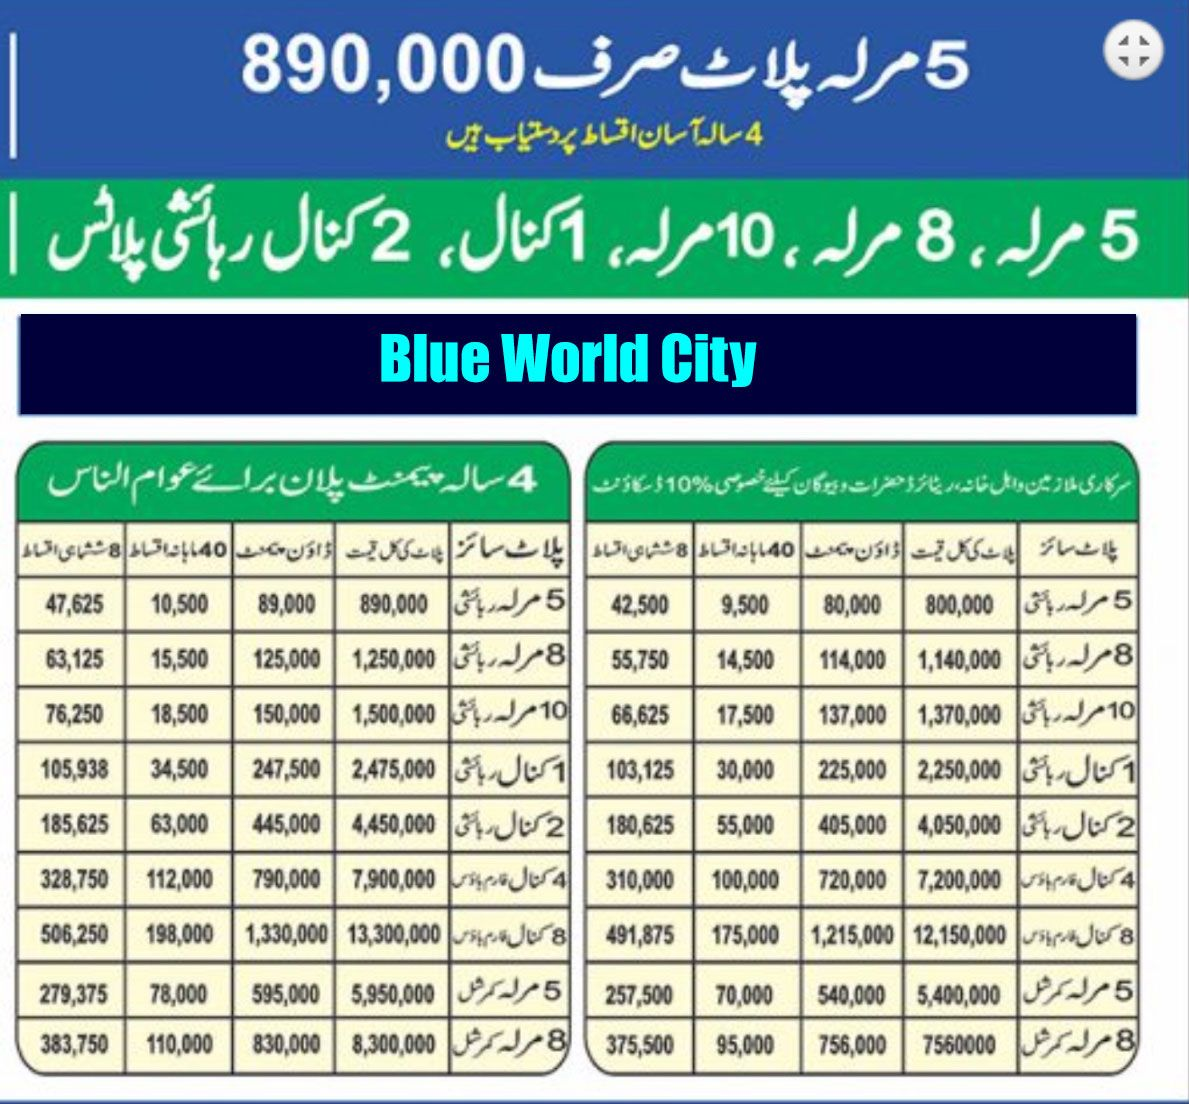 Blue World City Islamabad is a new housing project near